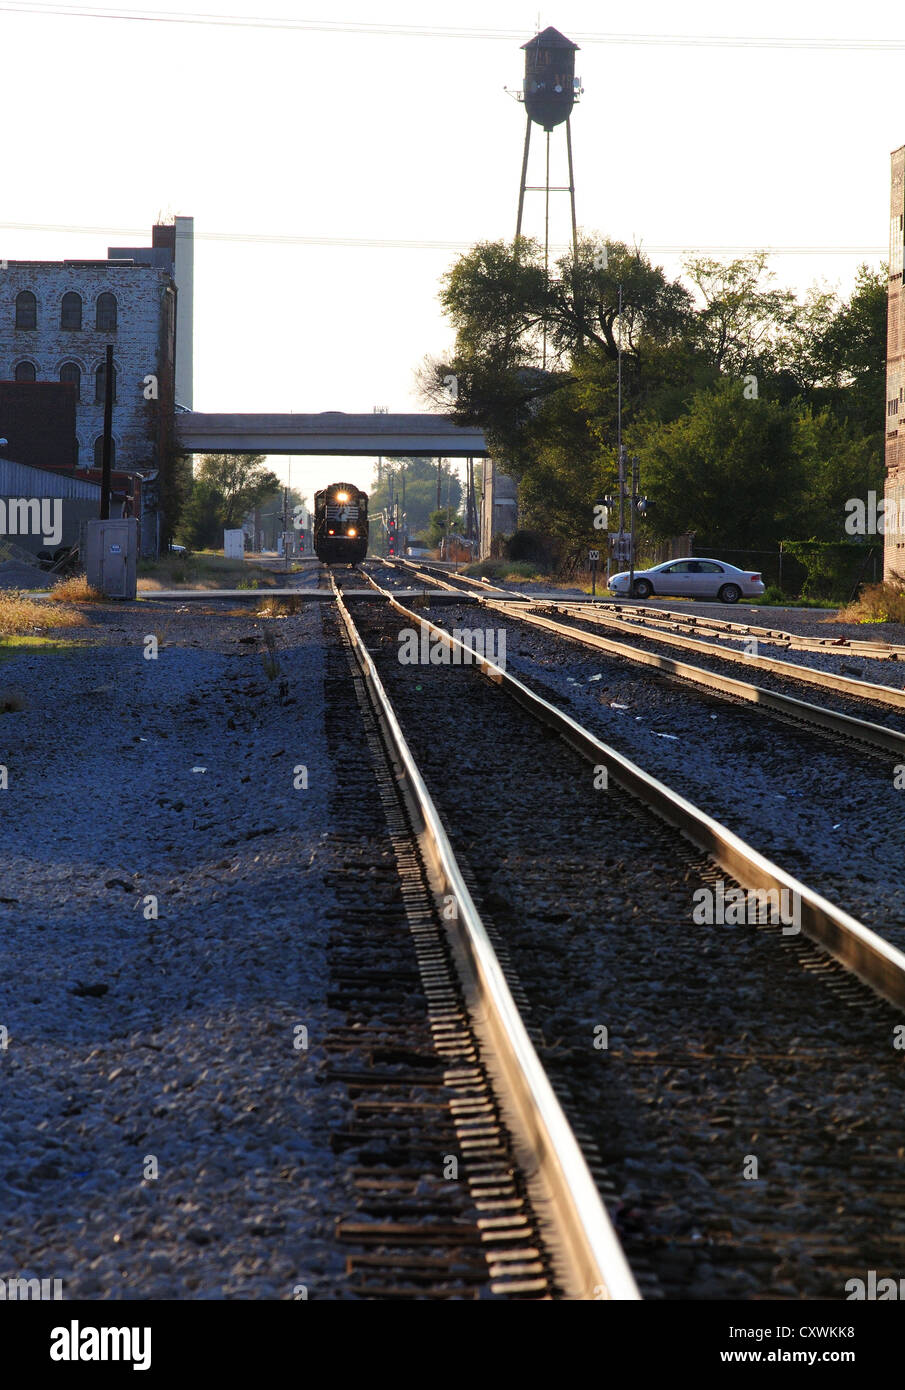 Train tracks in an industrial area - Stock Image